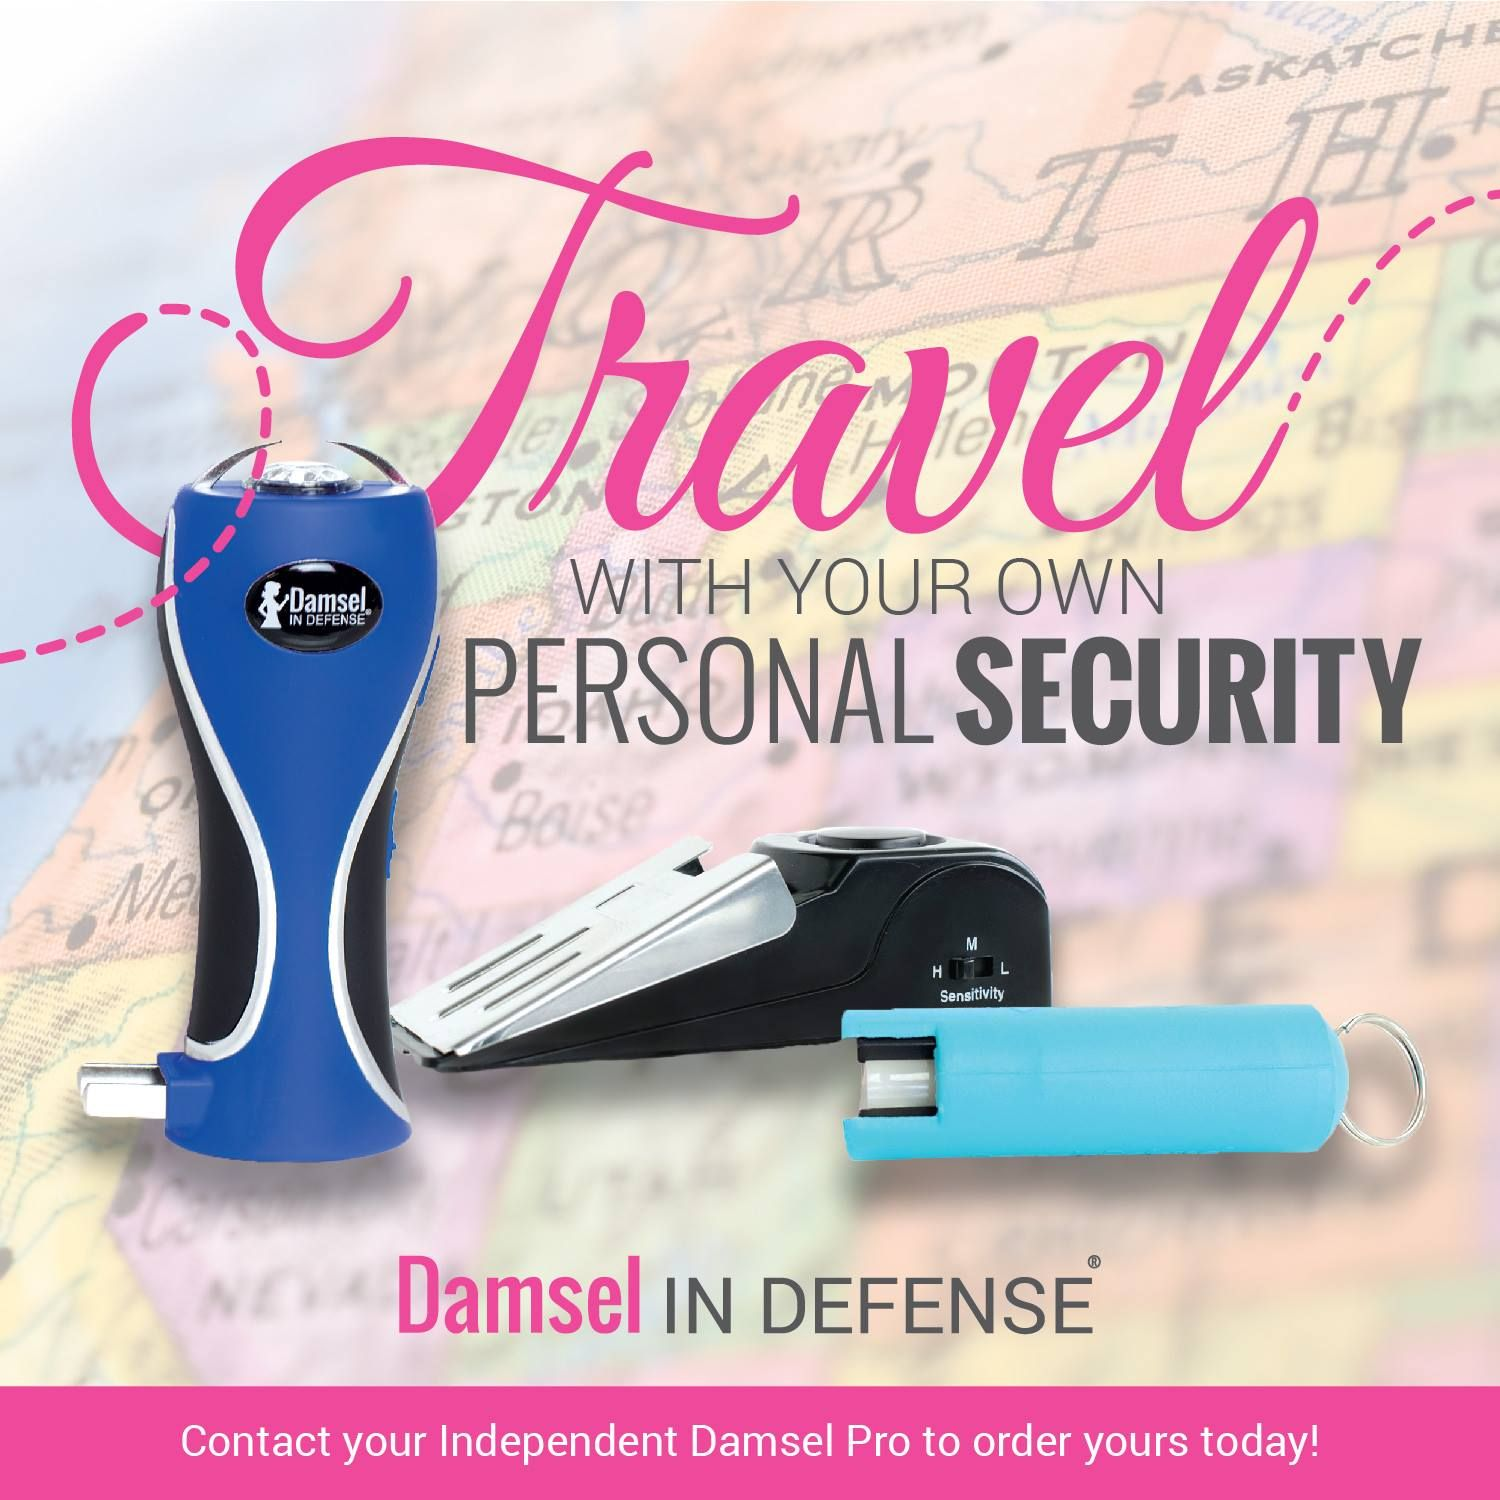 What do you take when you travel? www.facebook.com/damselpro1068